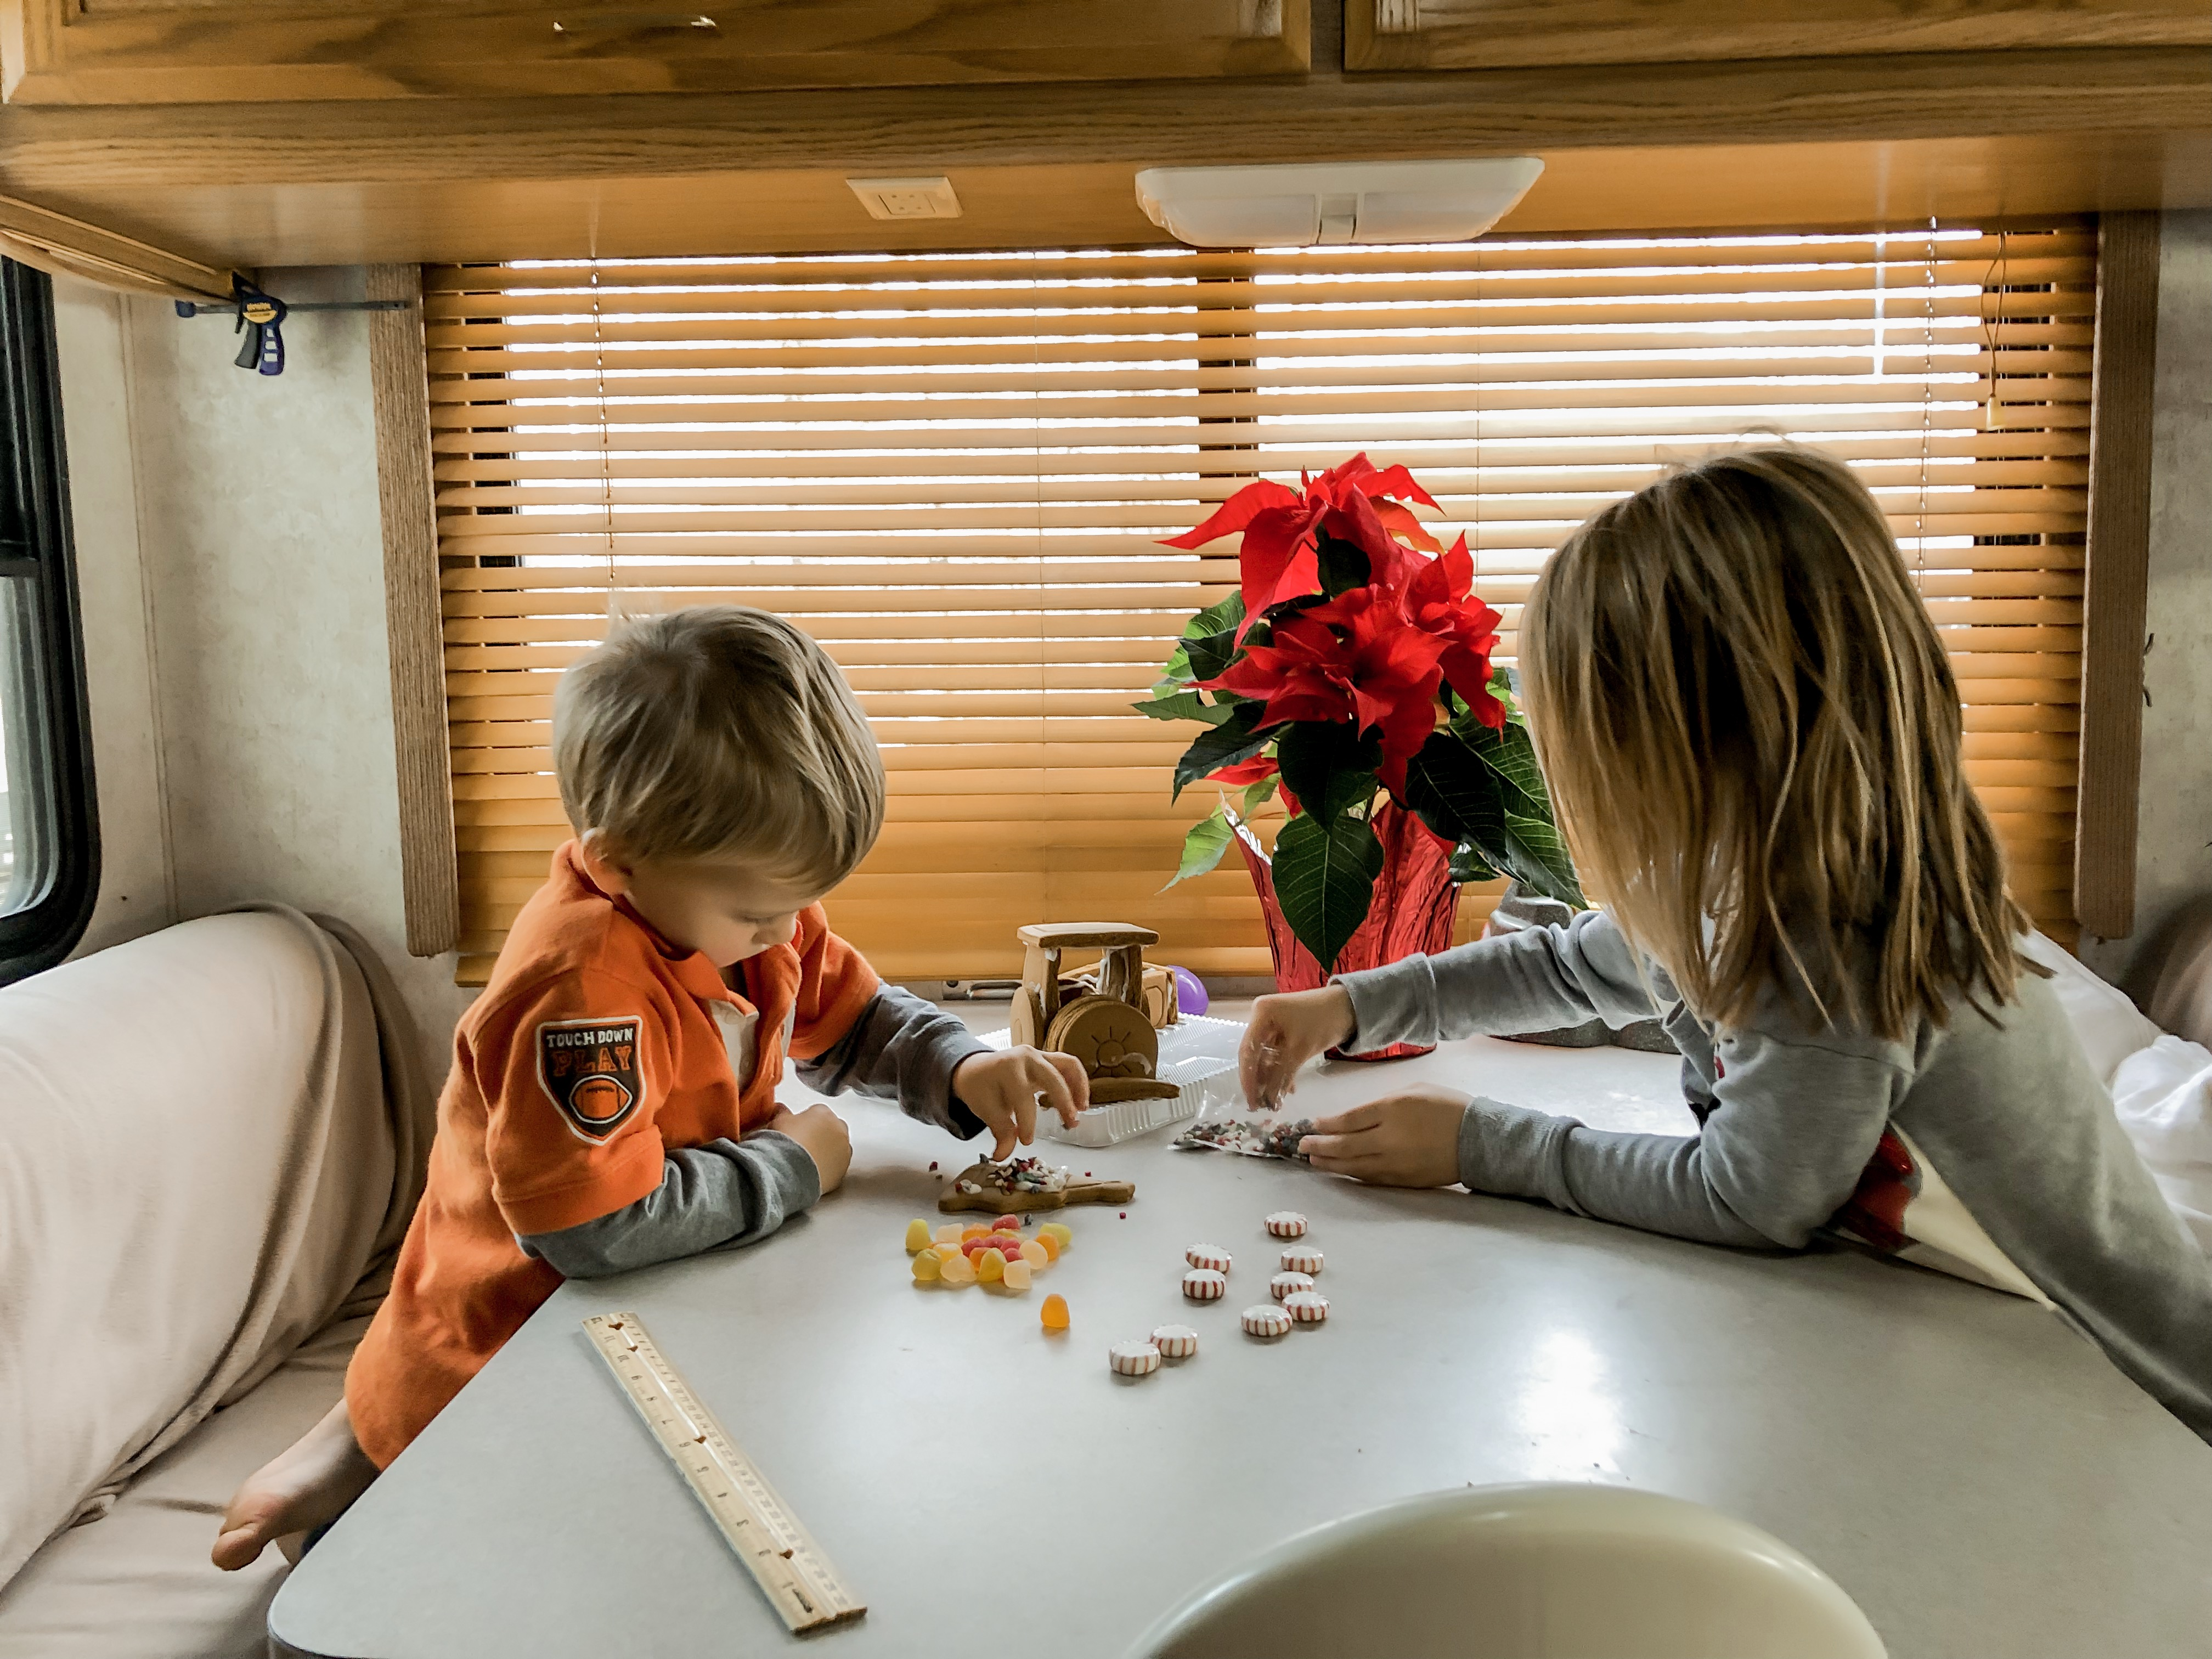 Top 9 Holiday RV Decorating Tips from Full-Time RVers